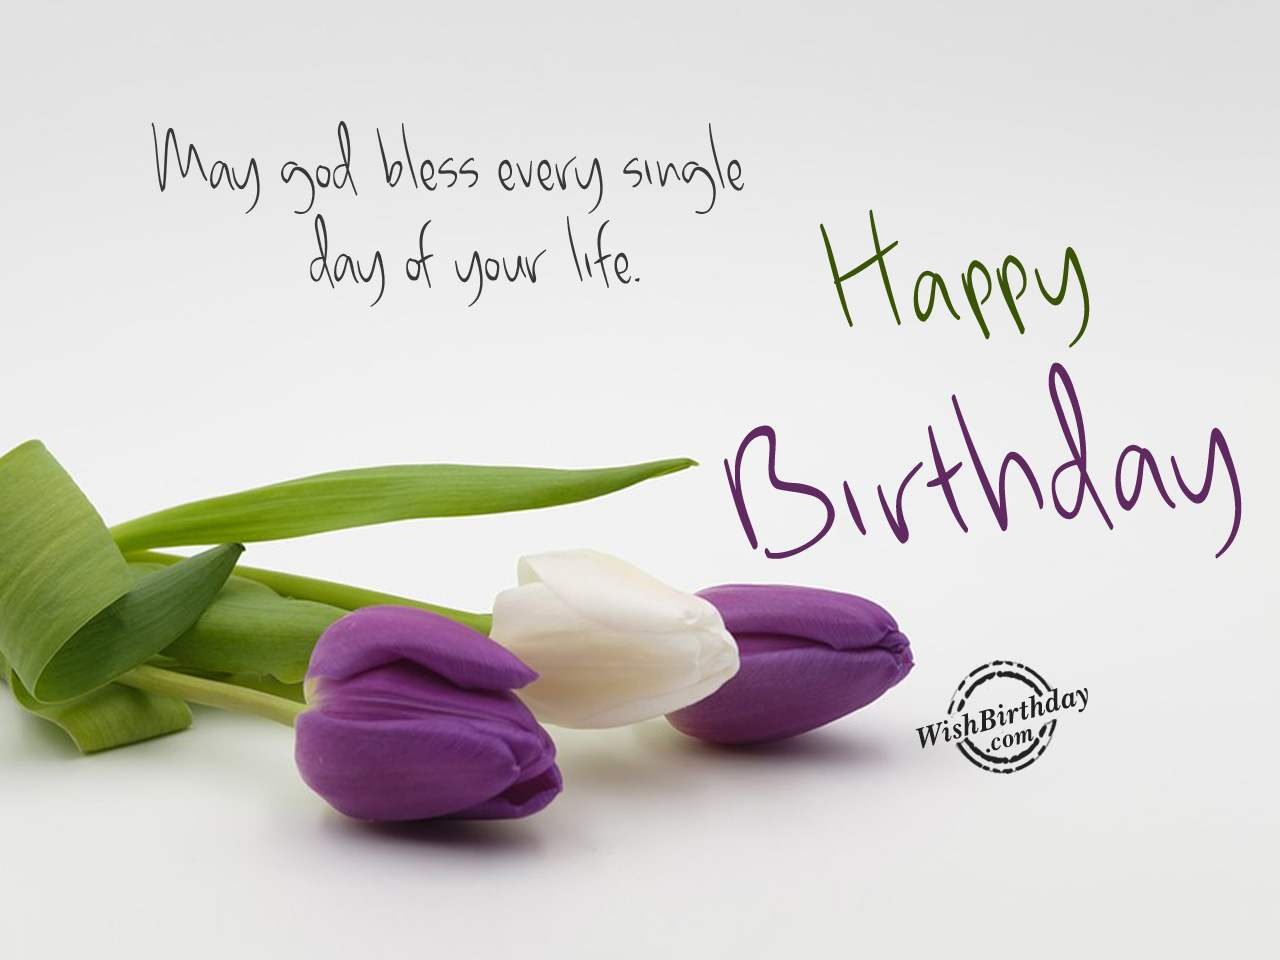 happy birthday may god bless you May god bless you, Happy Birthday   WishBirthday.com happy birthday may god bless you